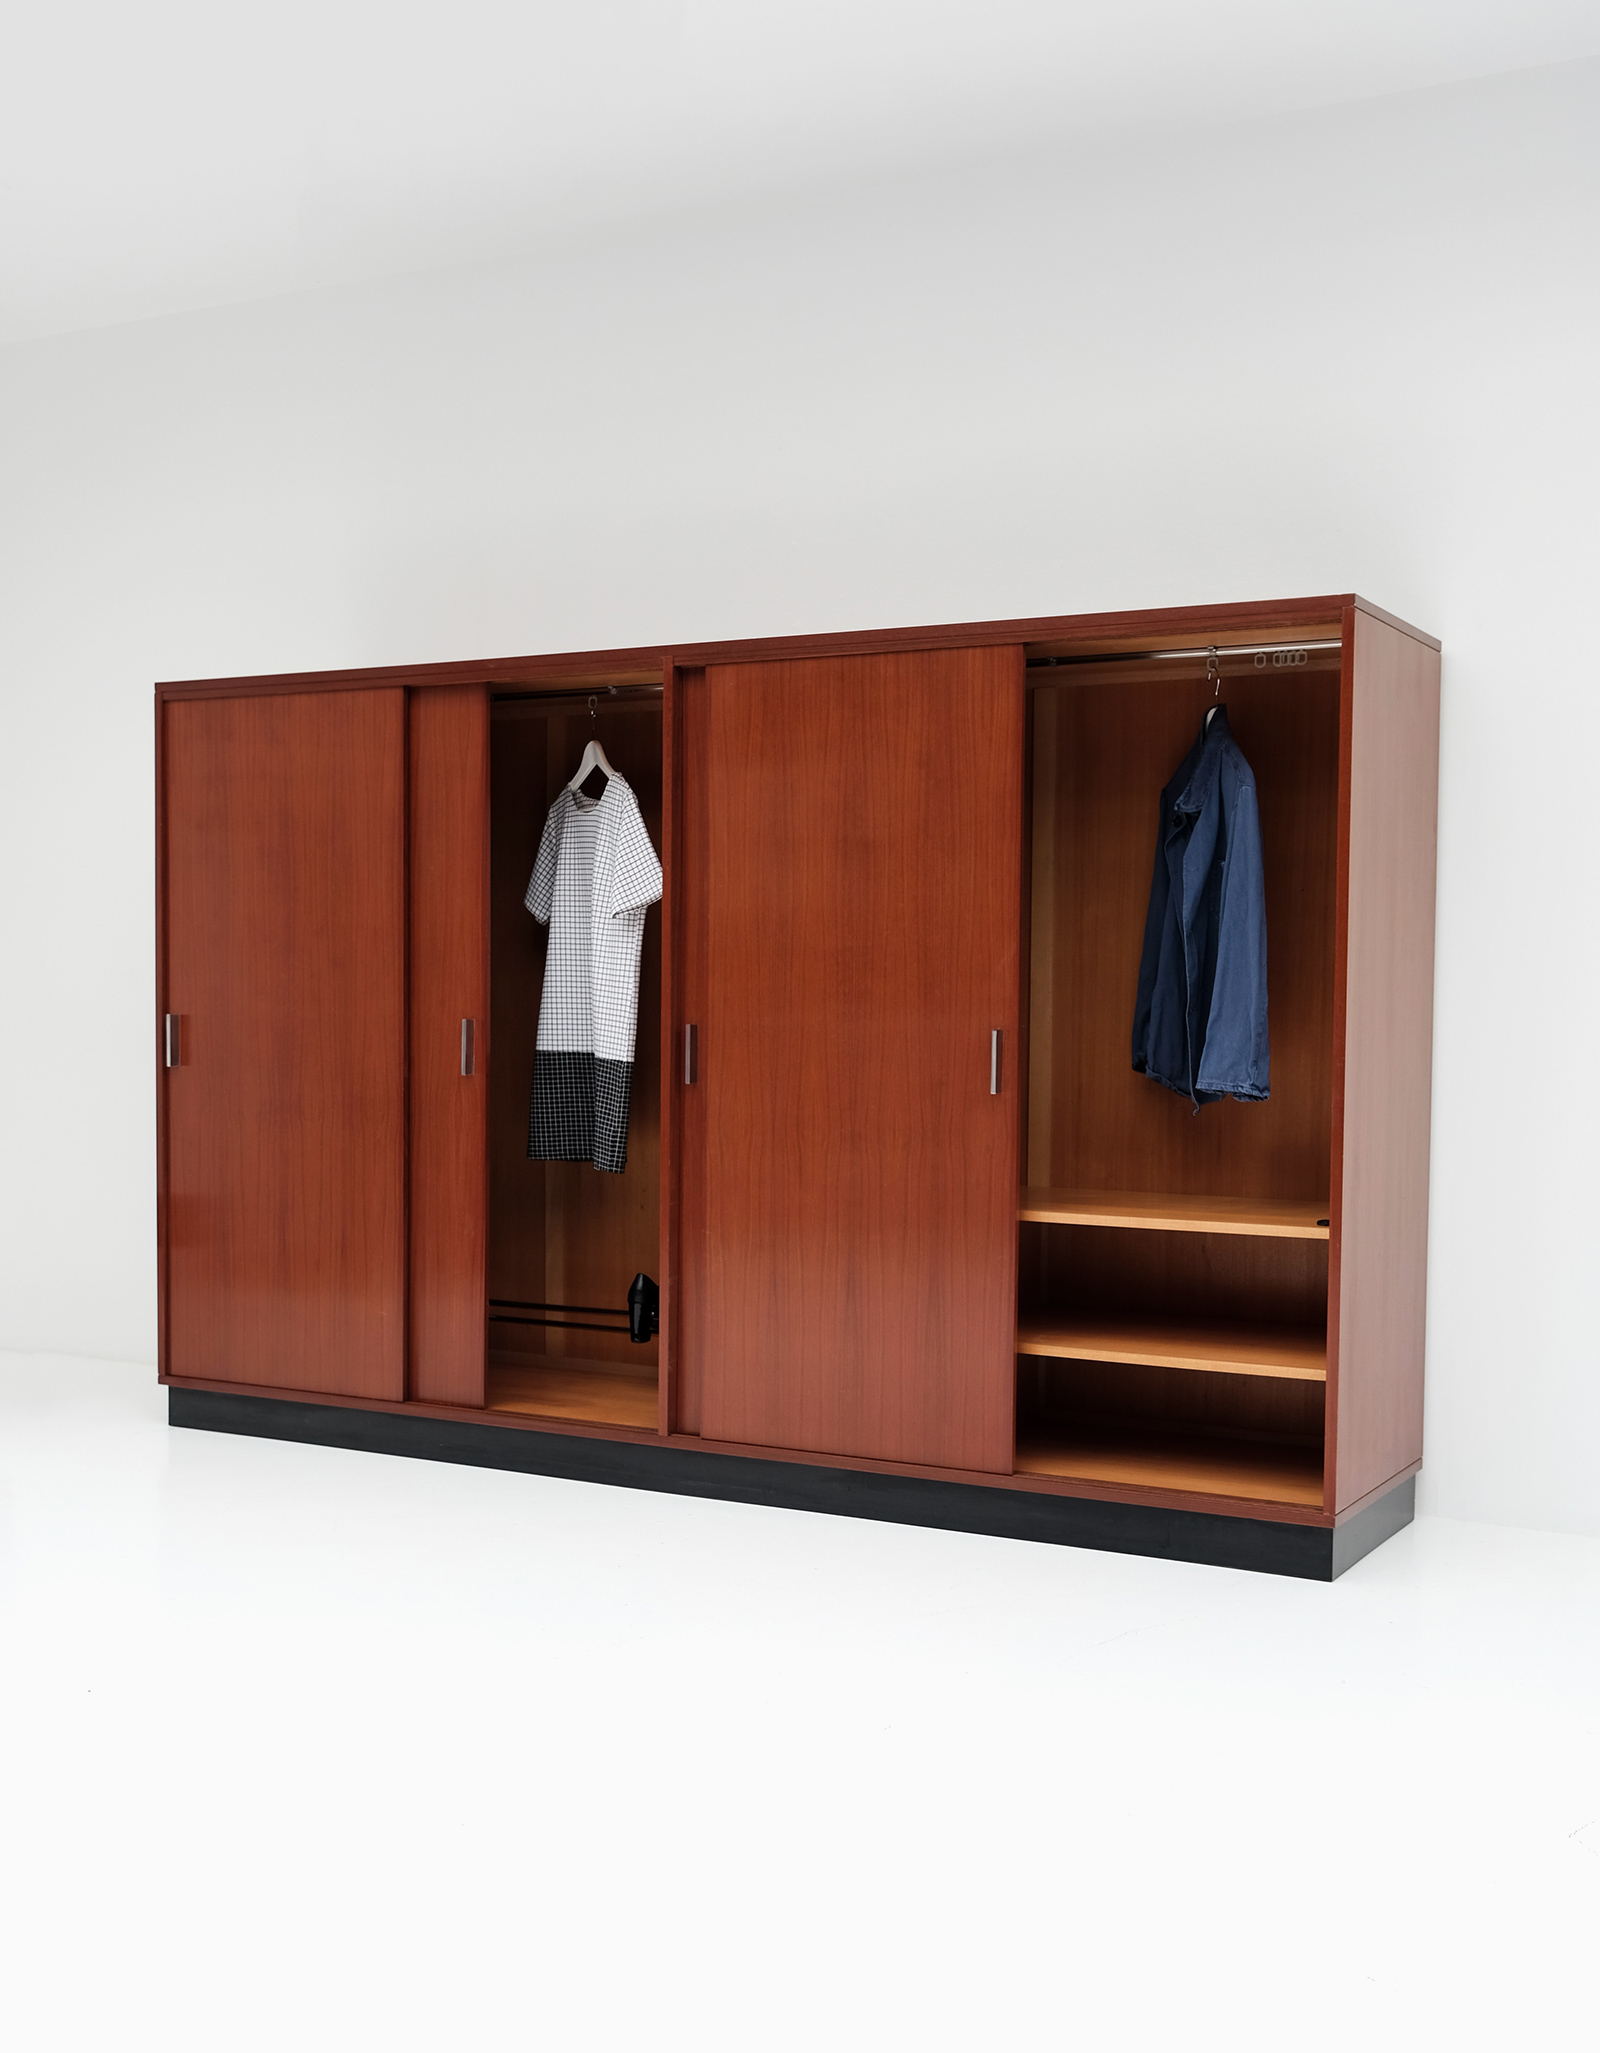 Alfred Hendrickx Wardrobe with Sliding Doorsimage 8